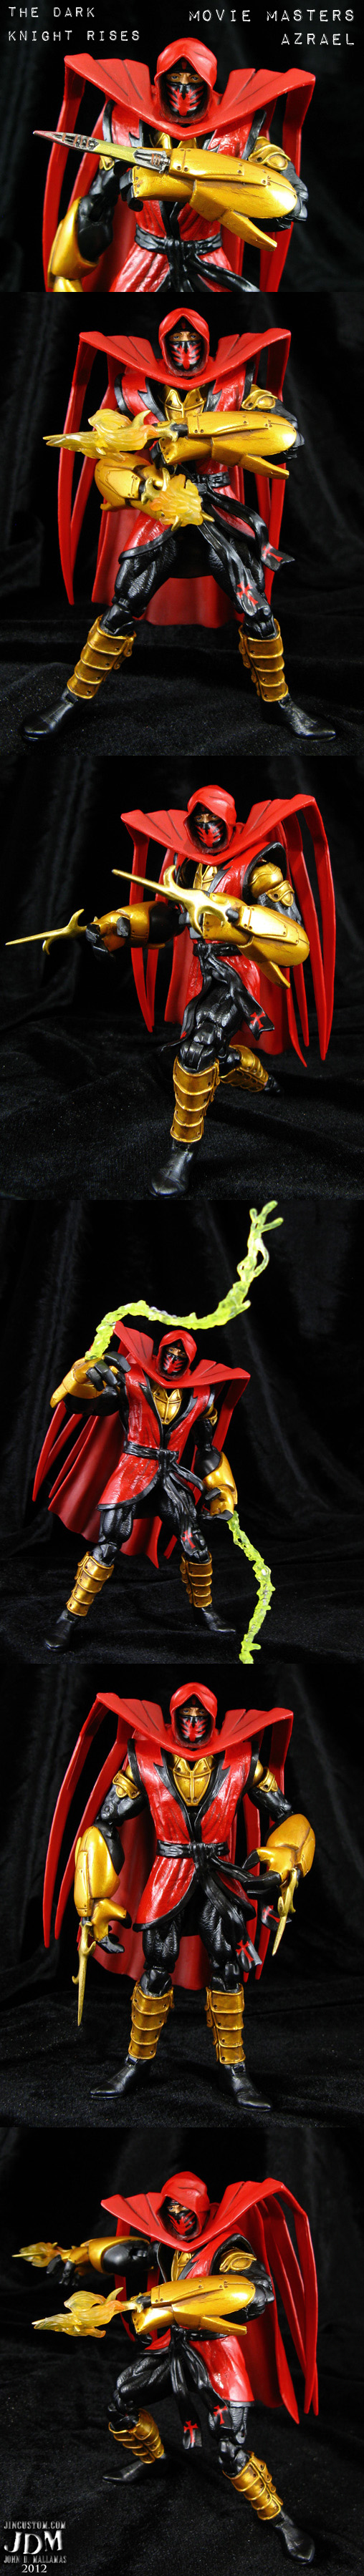 The Dark Knight Rises Azrael by Jin-Saotome